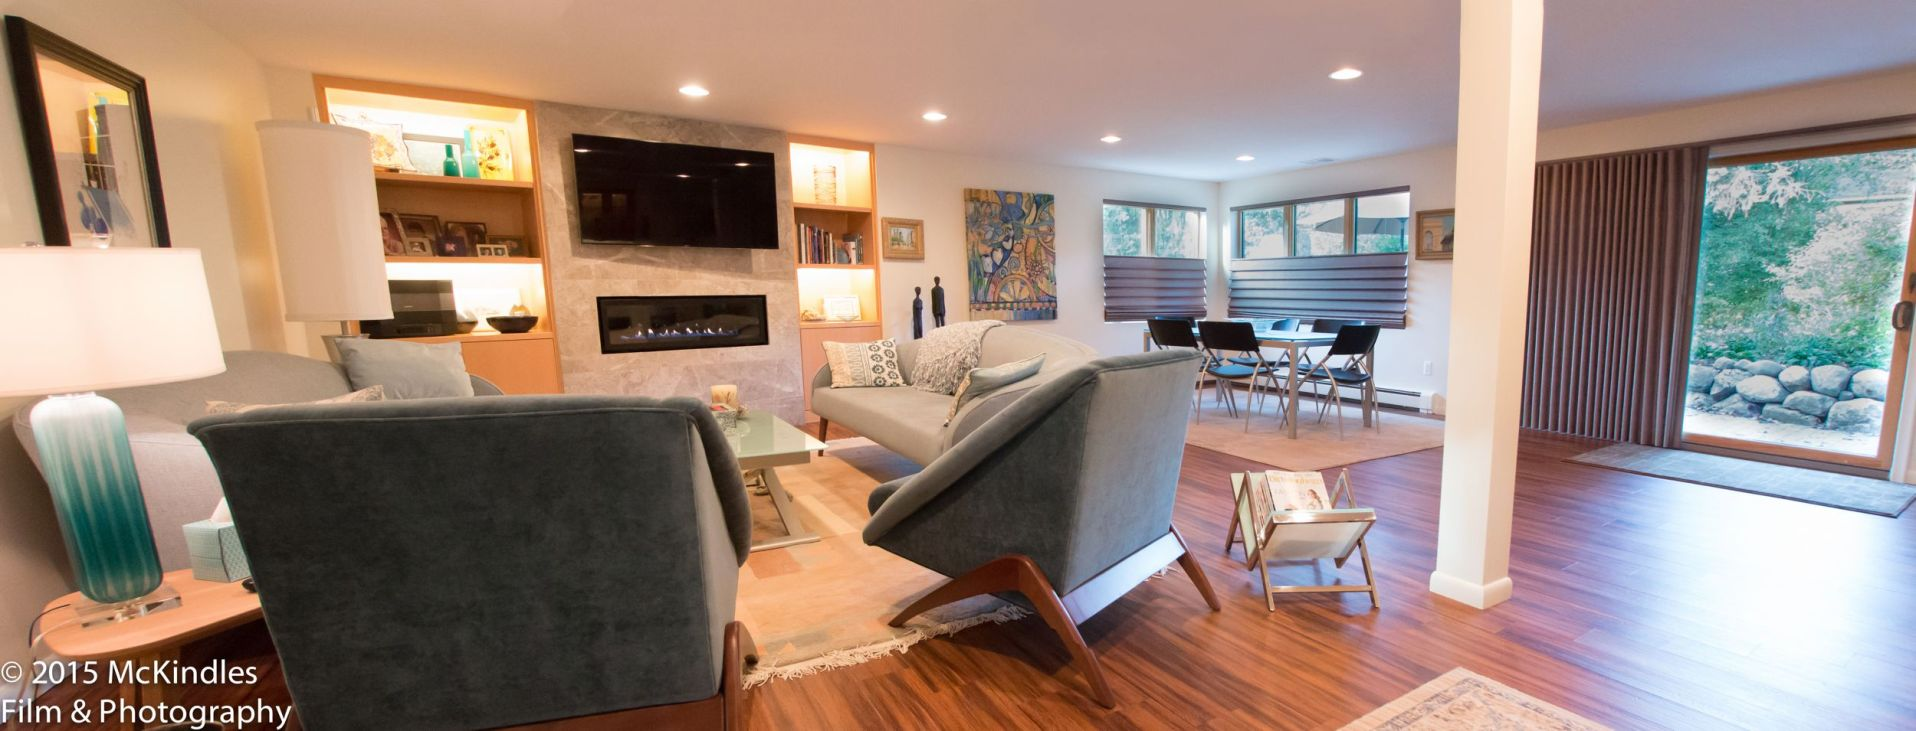 Panorama view of mid-century modern lower level living area